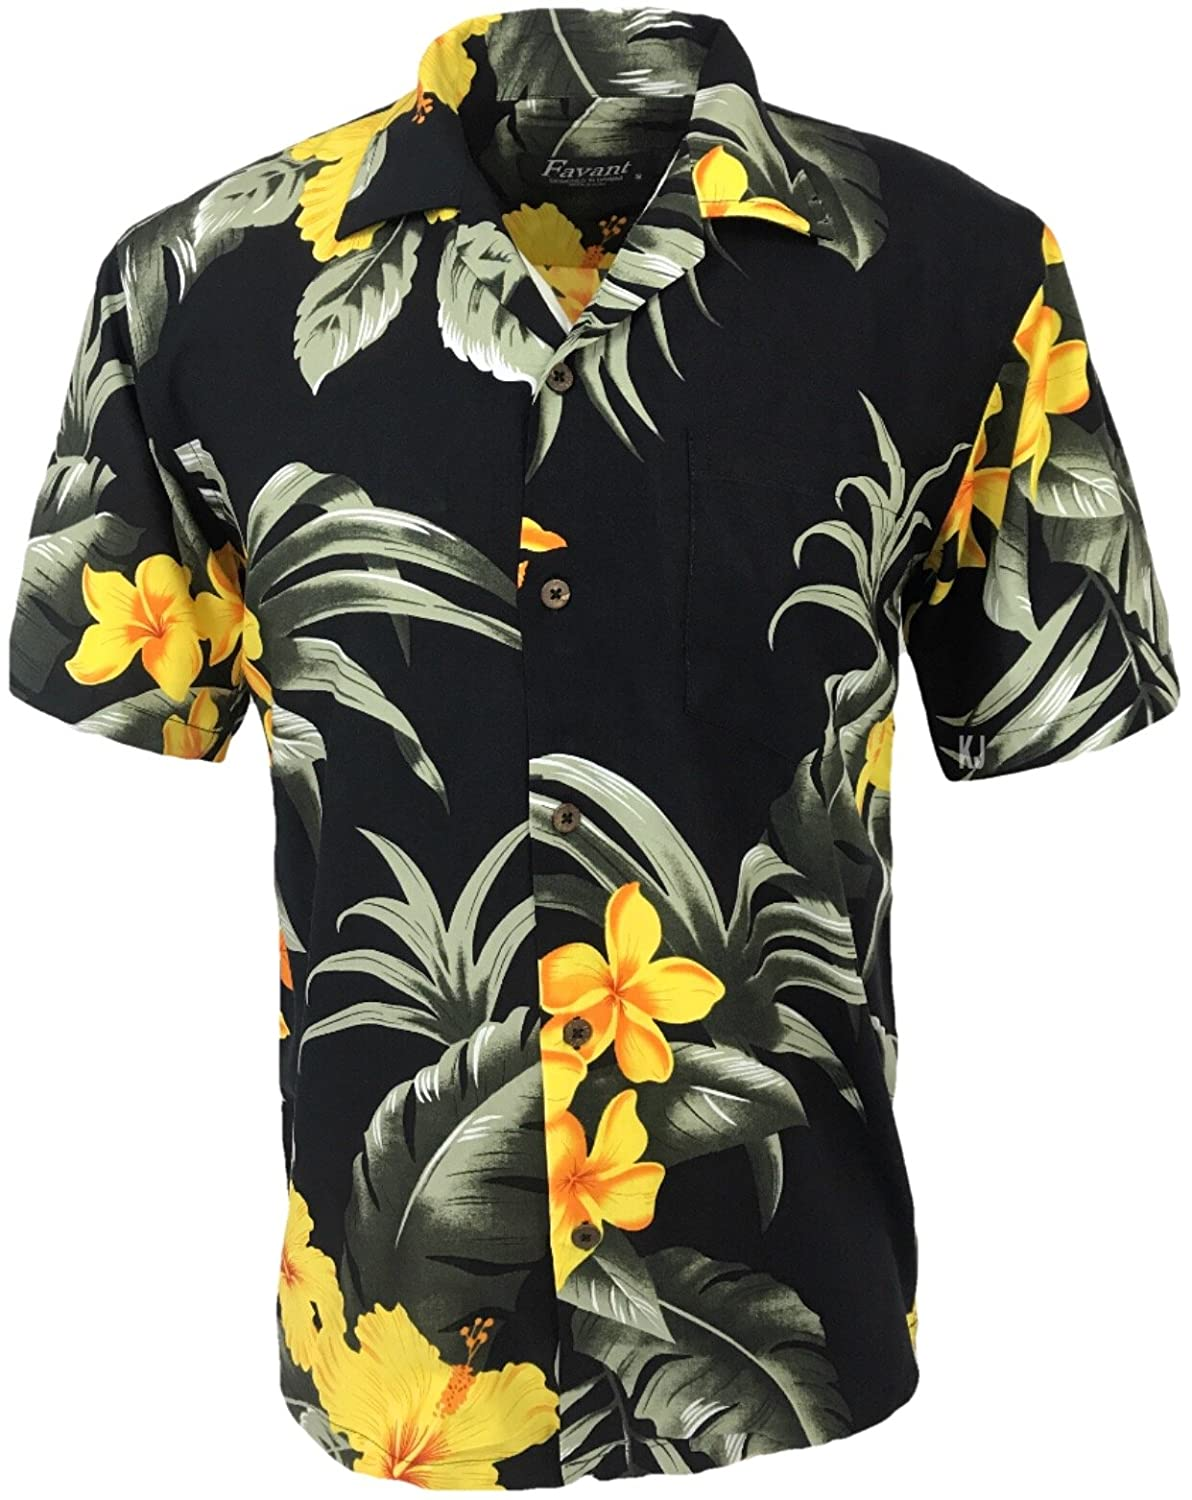 3e00c077 Floral Print Design 100% Rayon, High Quality Fabric Matching Pattern Pocket  Short Sleeve, Loose Fit Genuine Coconut Buttons Designed Locally in Hawaii  ...